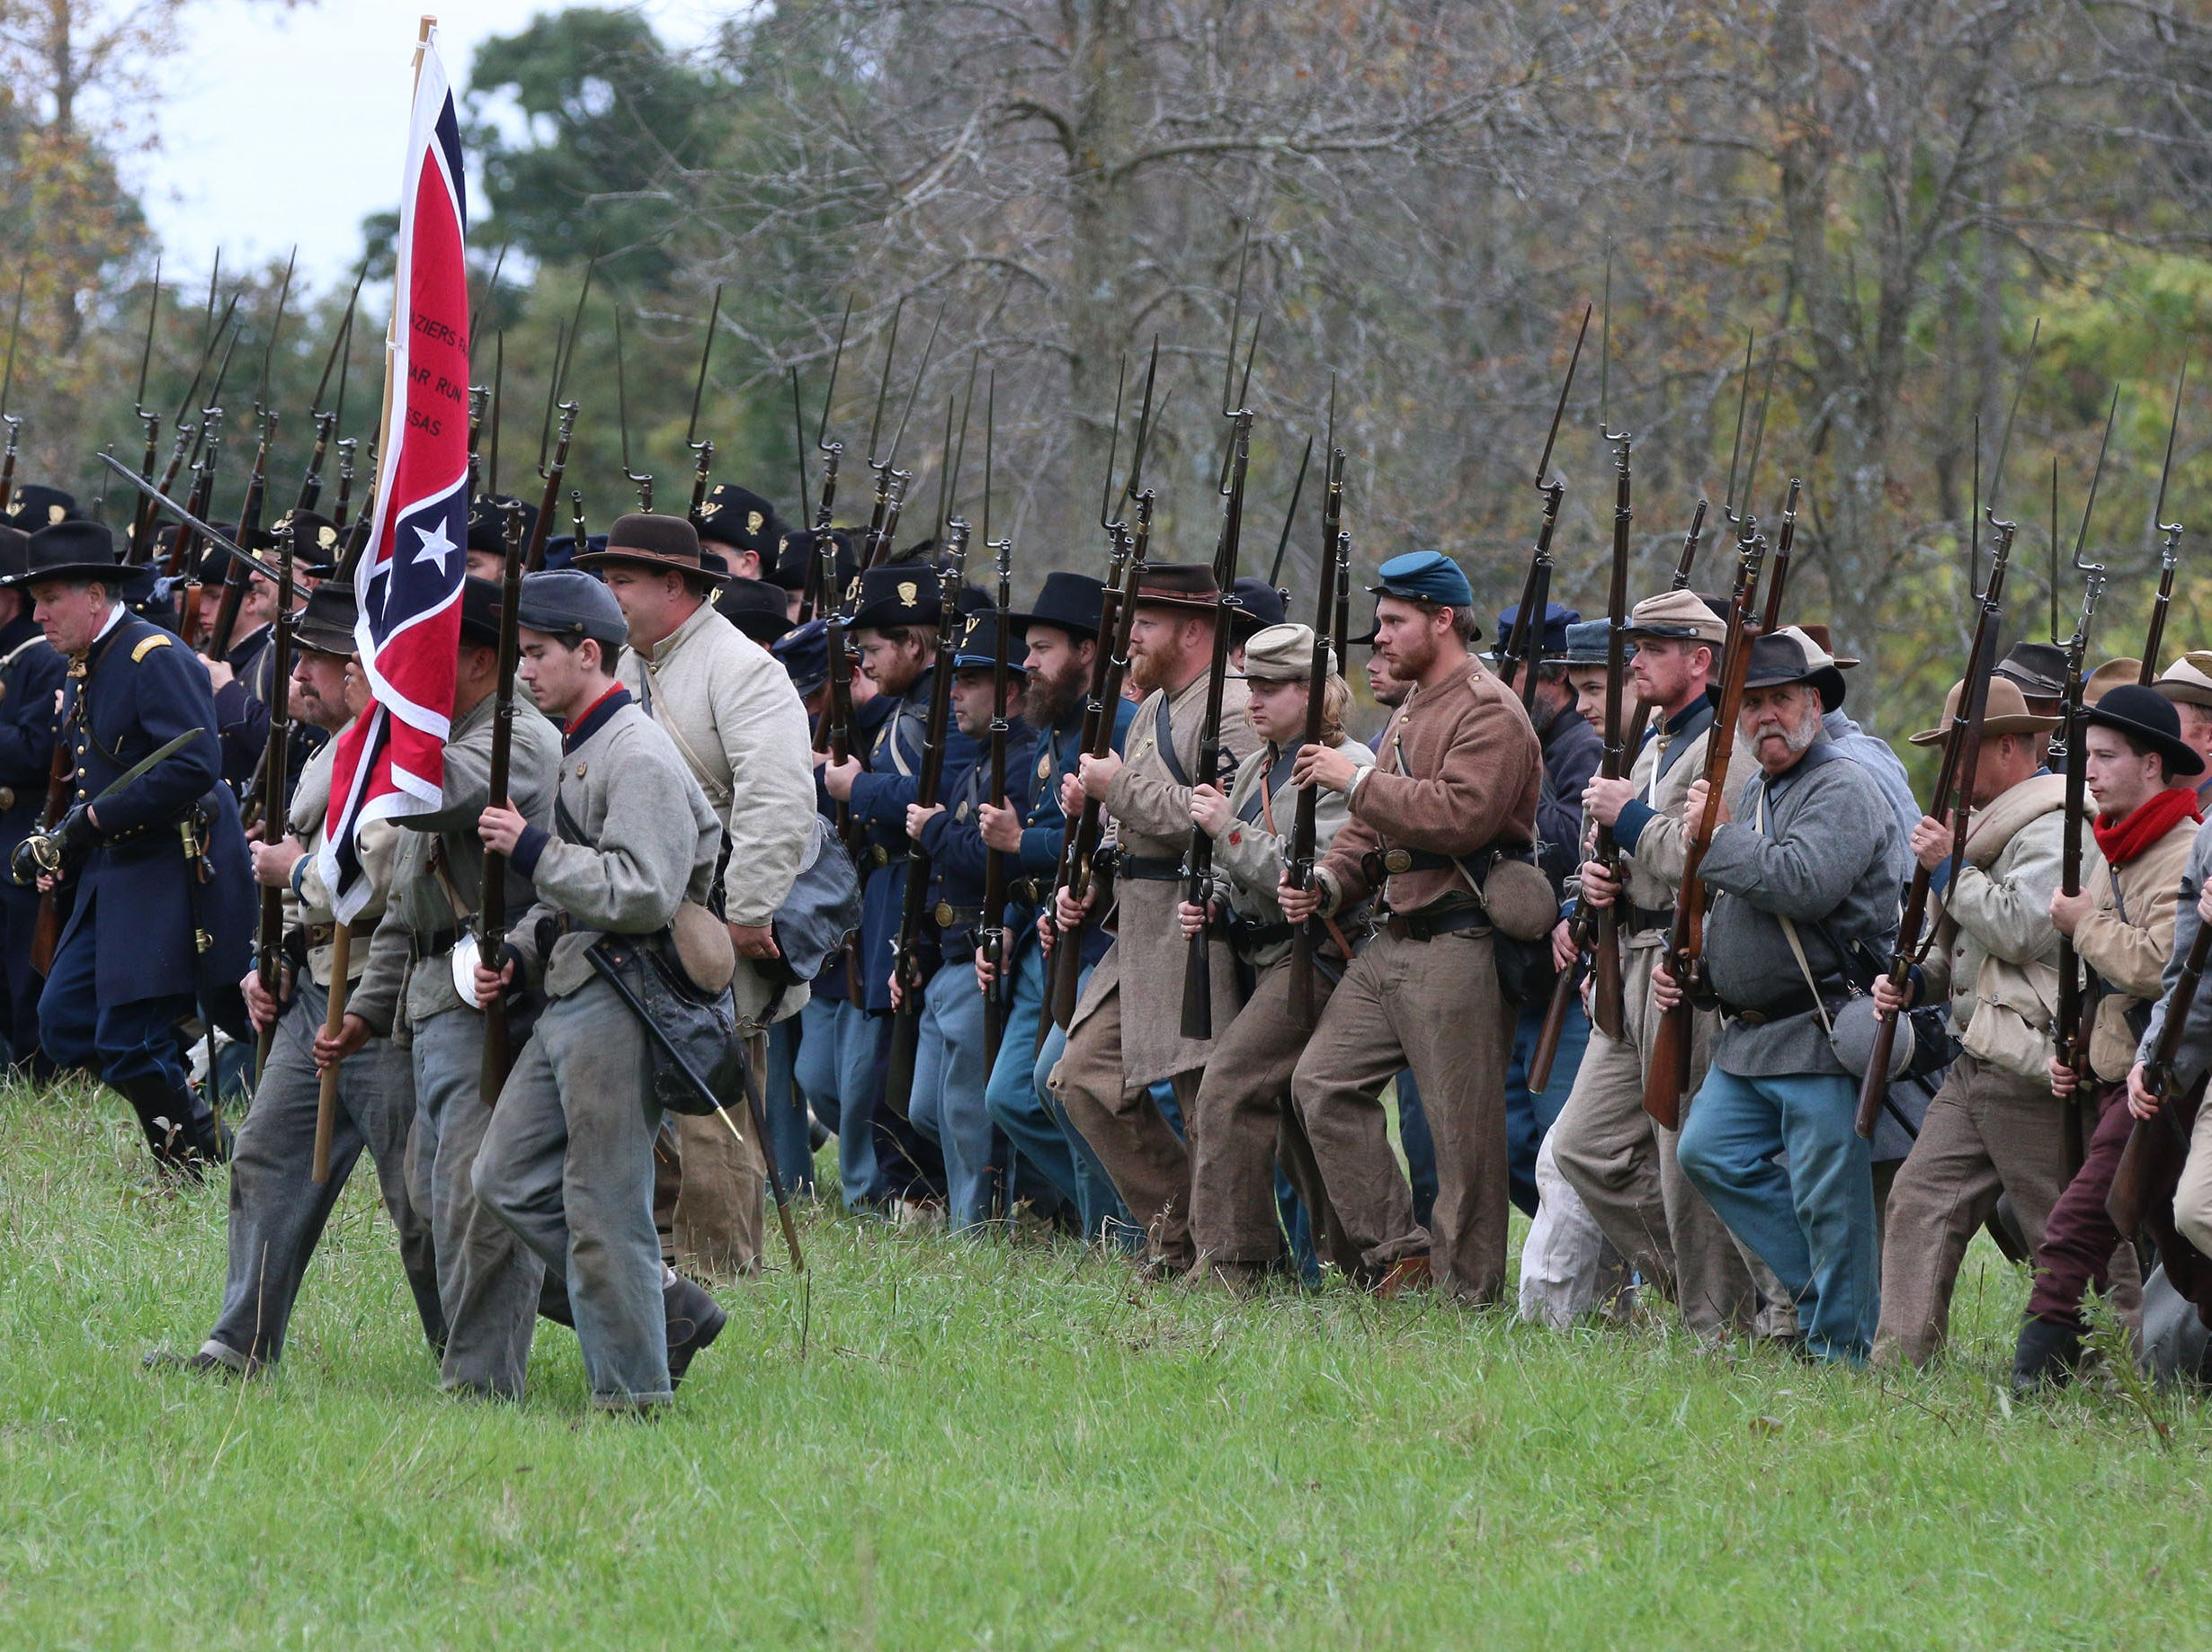 Civil War soldiers from both sides march following battle during the Civil War Weekend at the Wade House, Saturday September 29, 2018, in Greenbush, Wis.